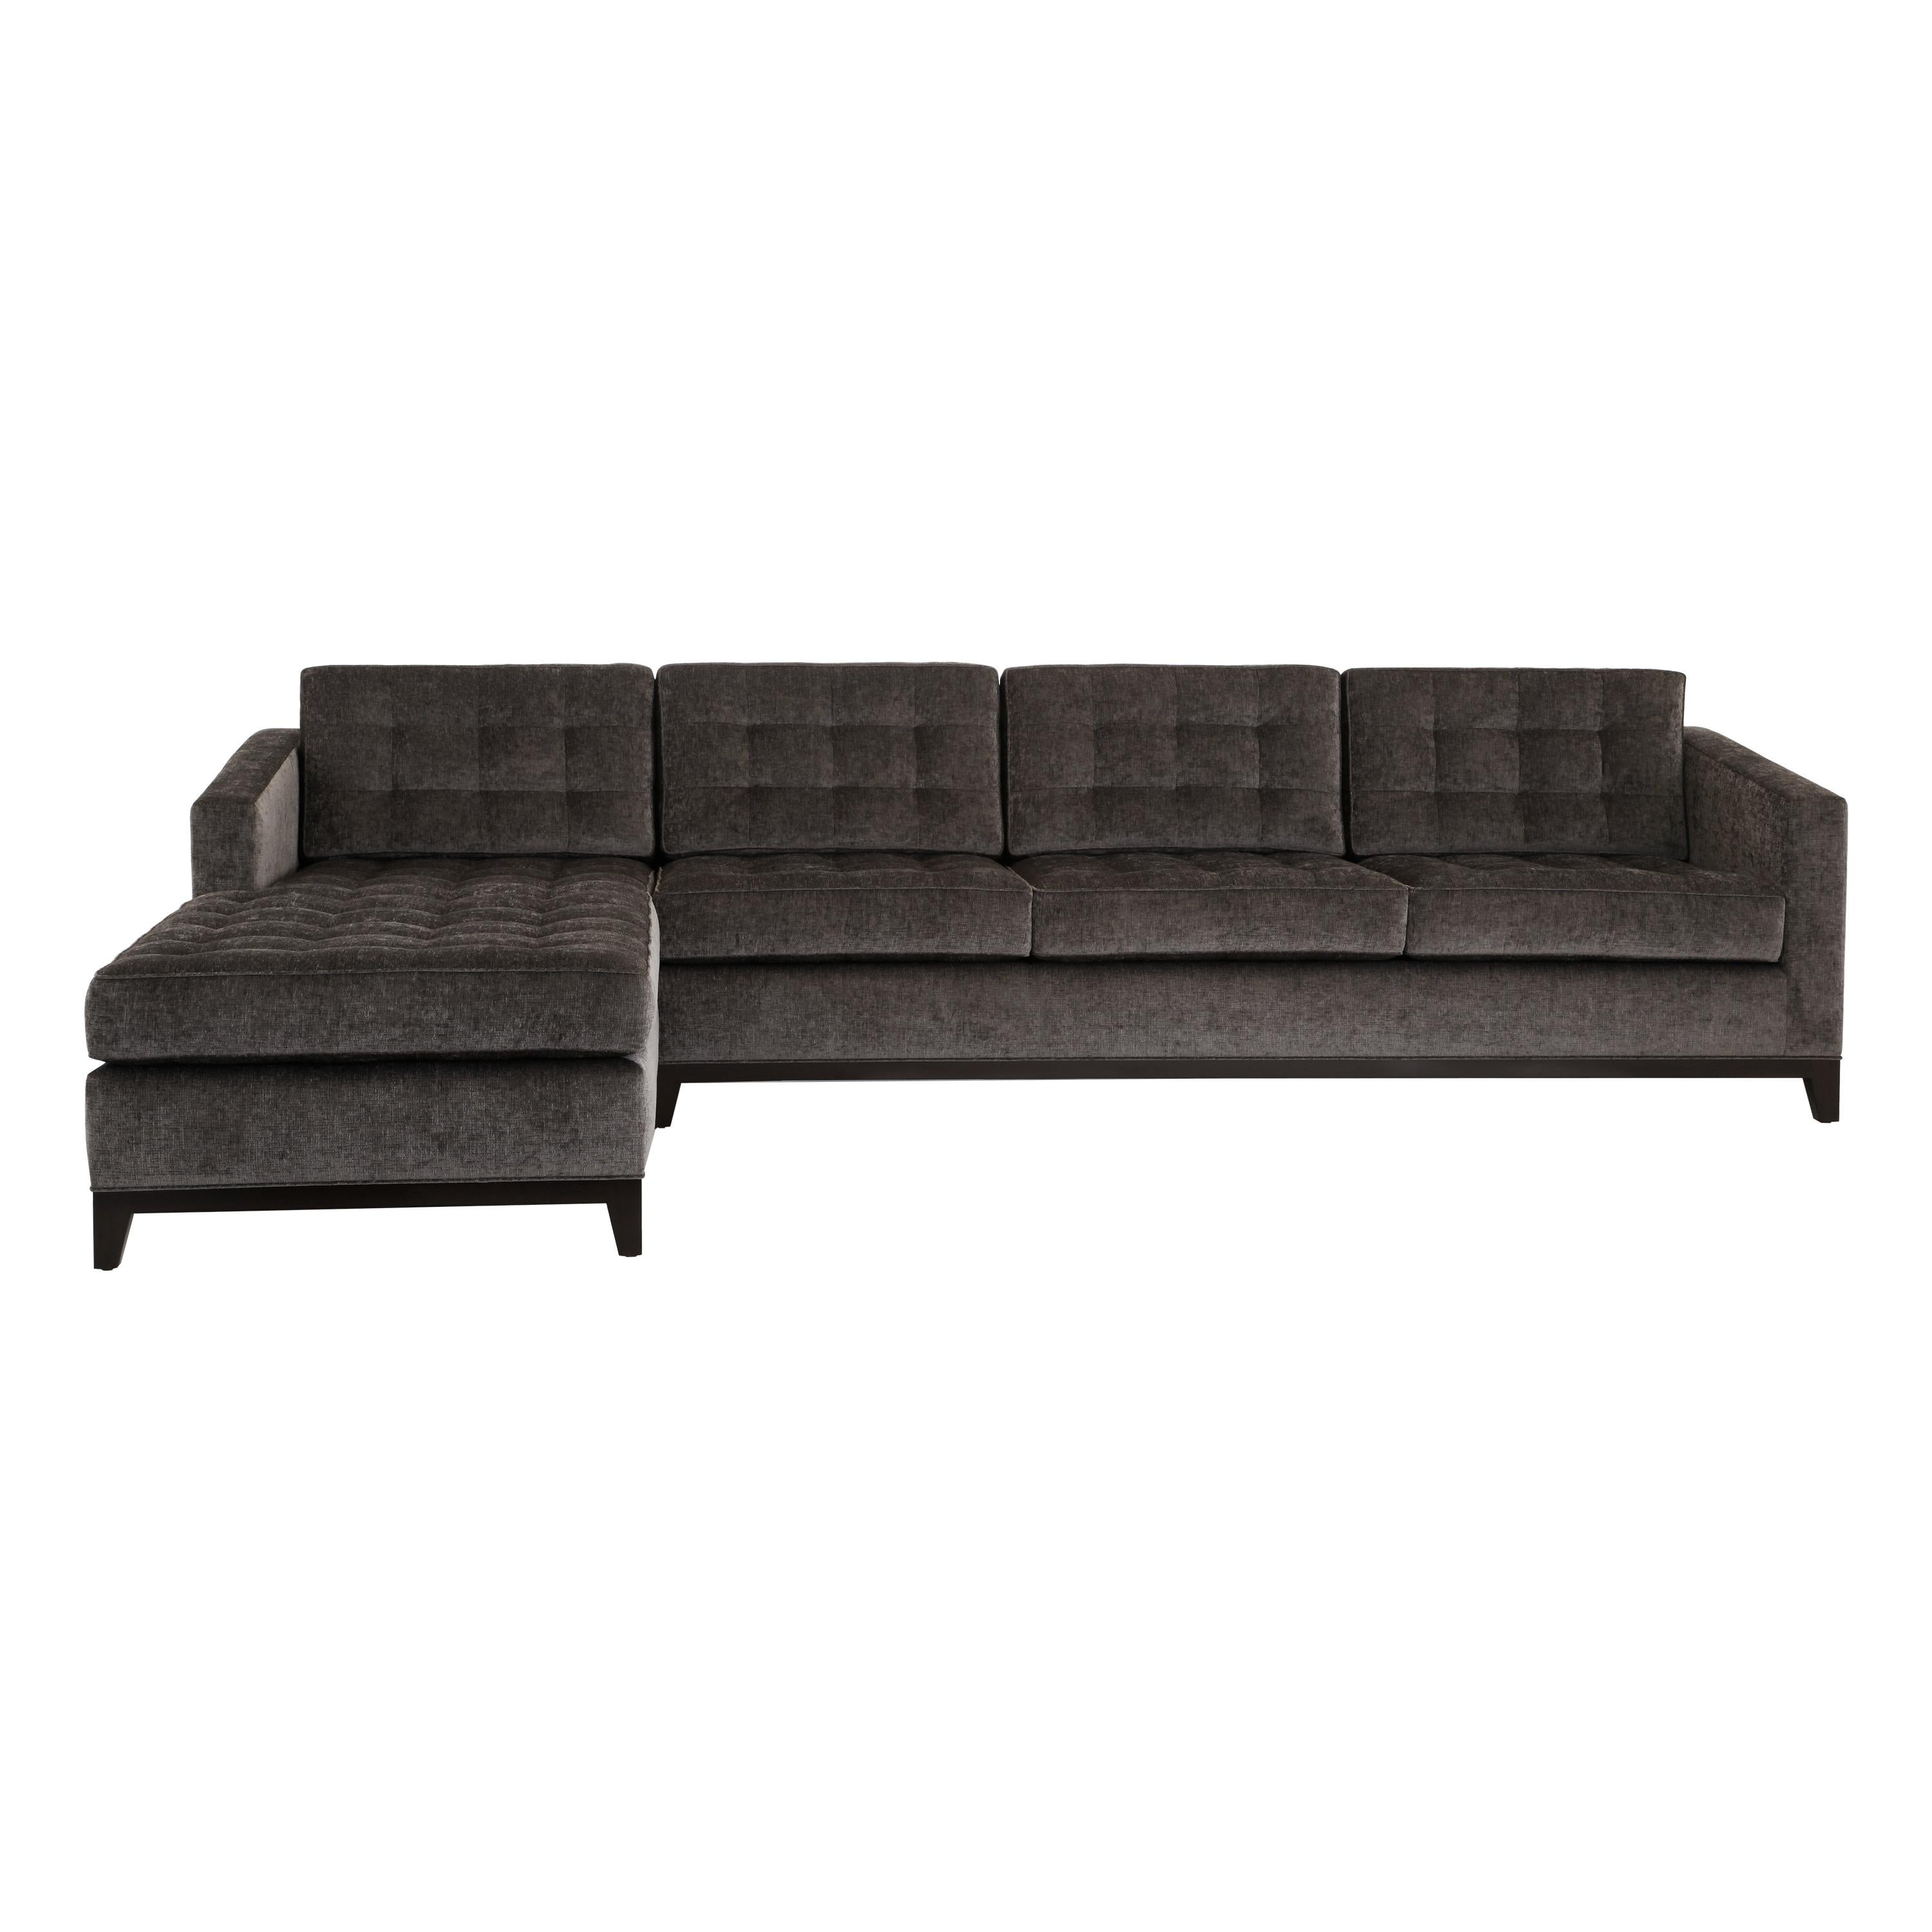 Eden Sectional Loose Seat and Back Cushions, Pull Tufting